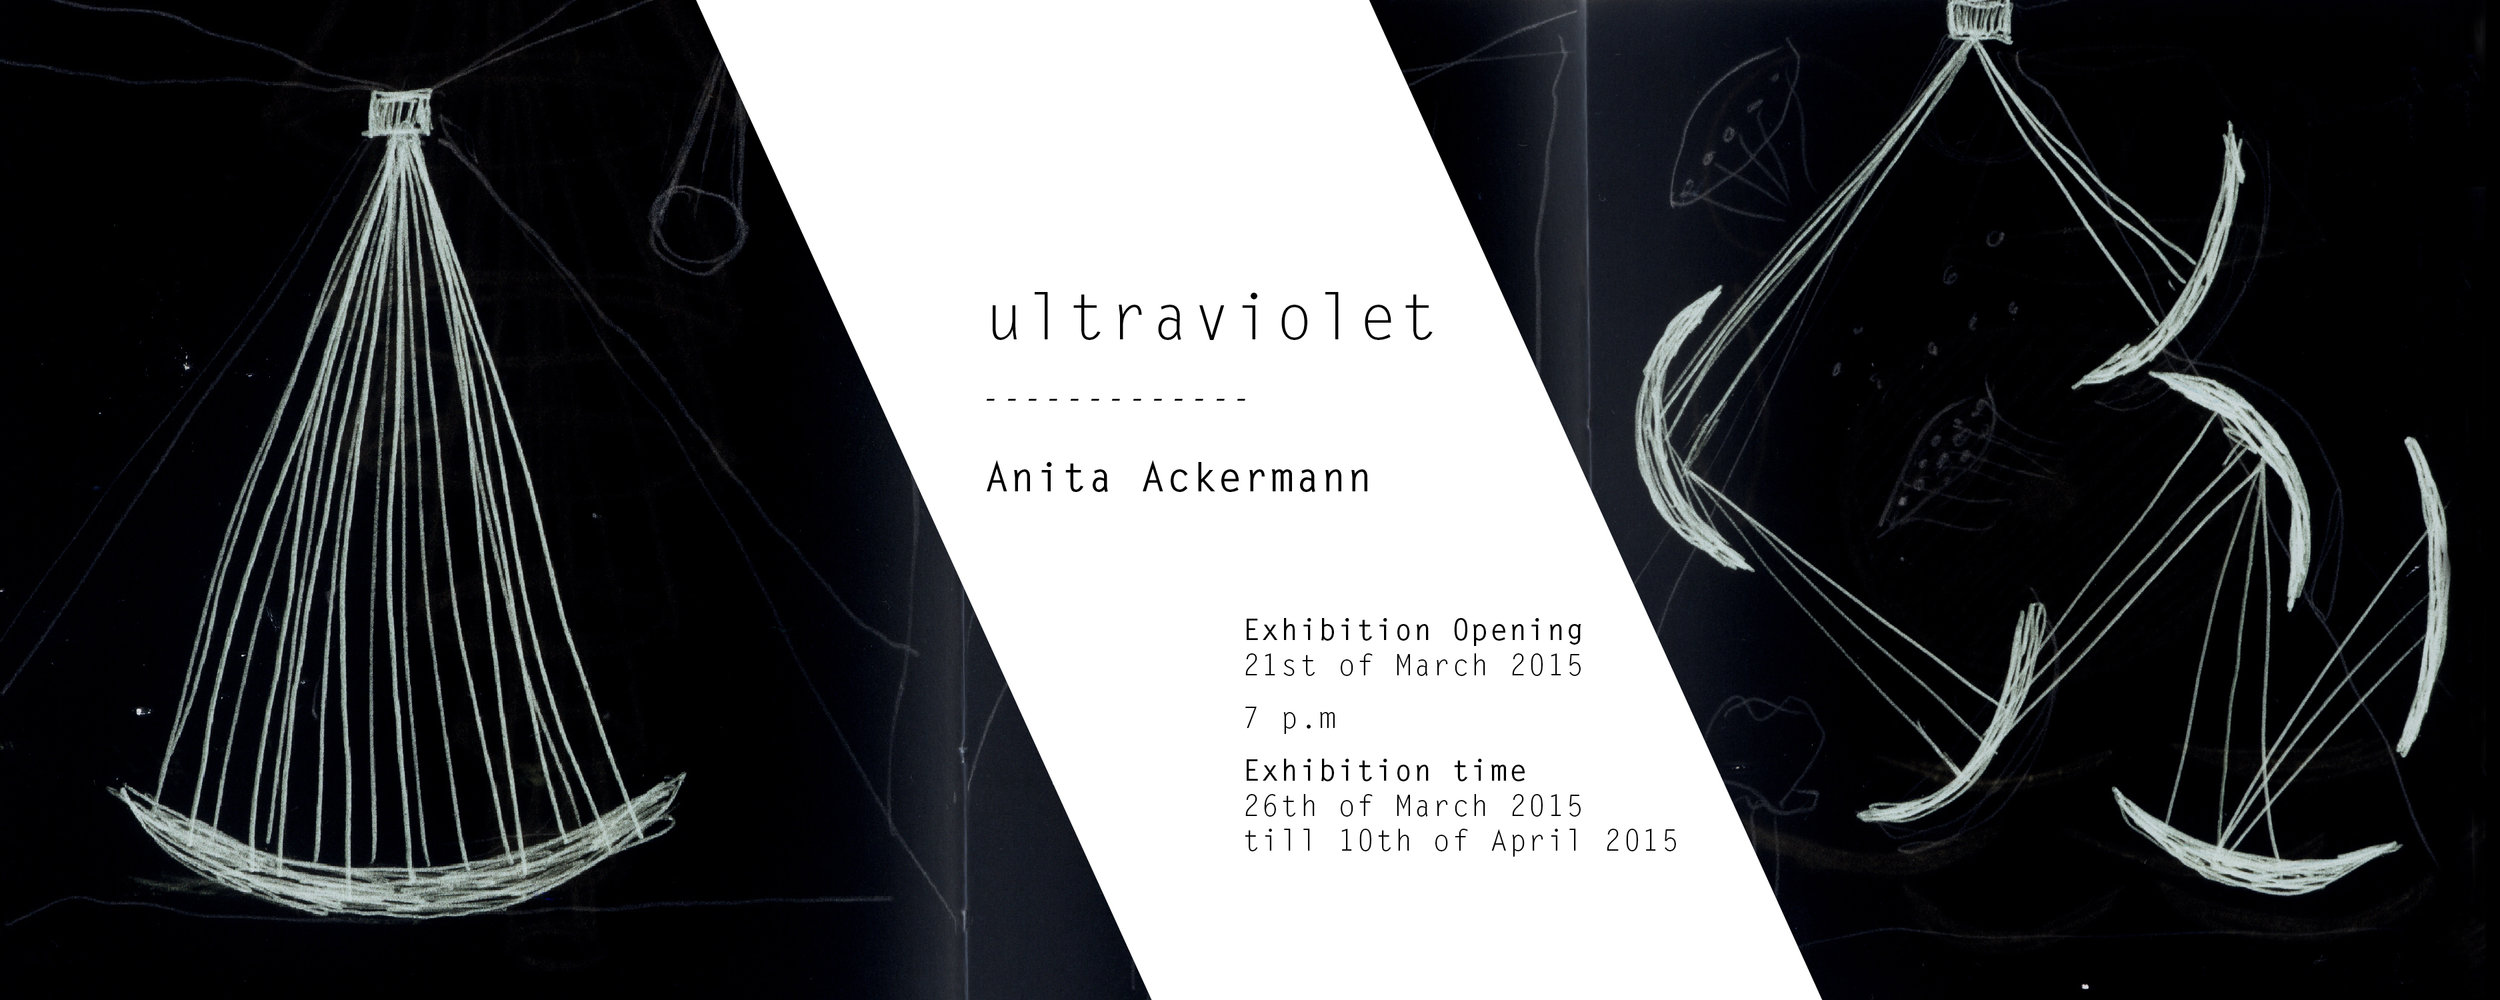 http://www.vesselroomproject.com/exhibition/show/ultraviolet